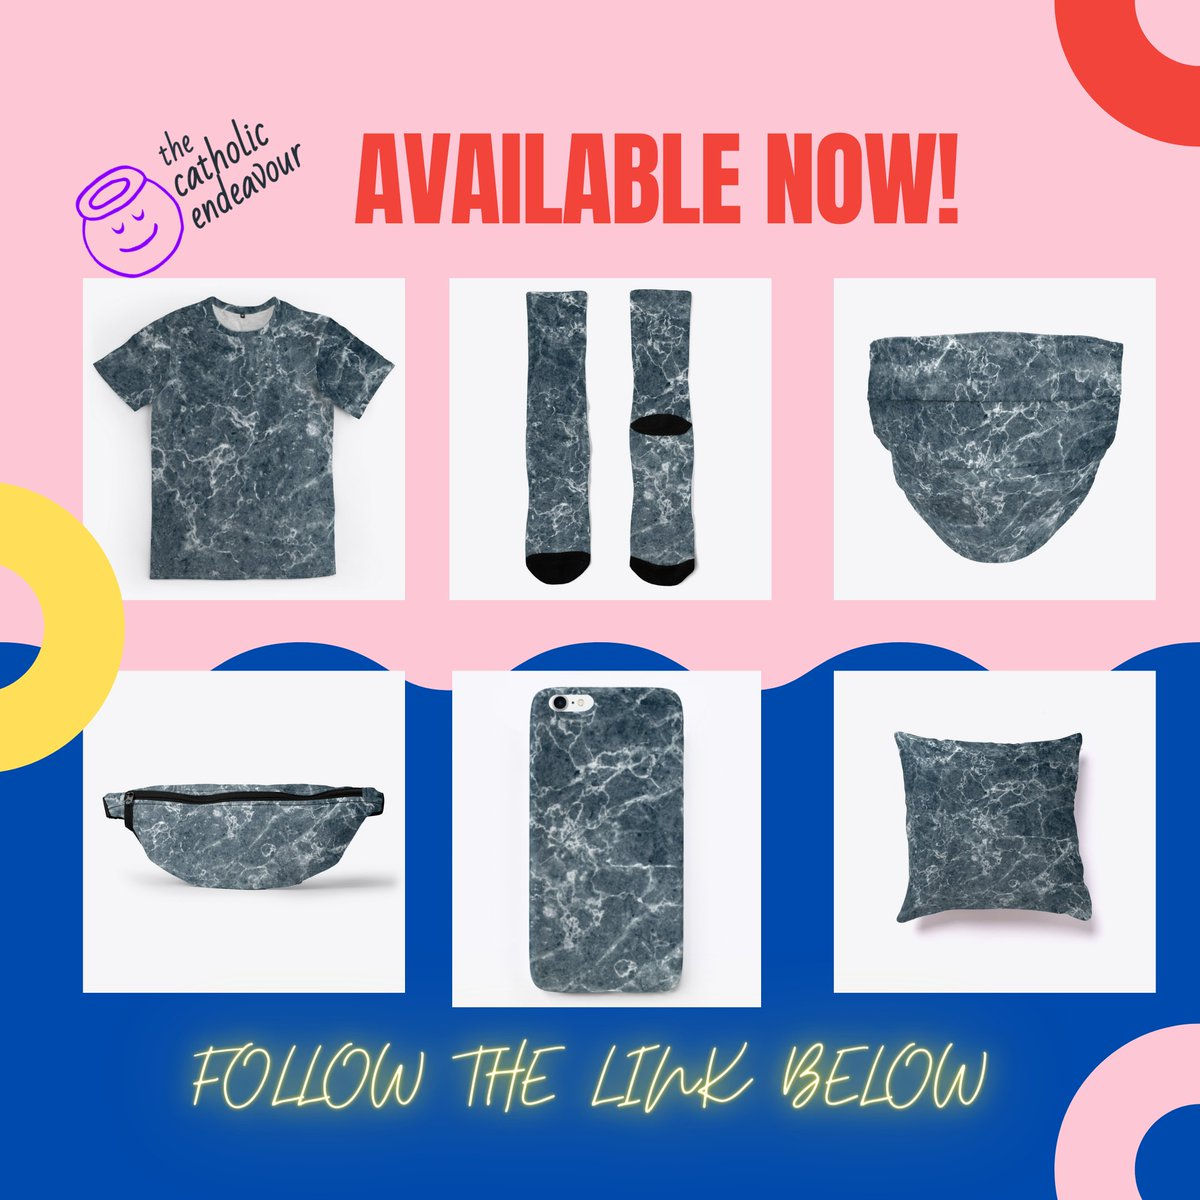 Gray Marble Designed Items NOW AVAILABLE!! Visit my exclusive online store at https://bit.ly/tcesite  #ForSale #marbledesign #apparel #giftideas #facemasks #pillow #shirts #shirt #gray #buynow pic.twitter.com/wCeYWRcYno